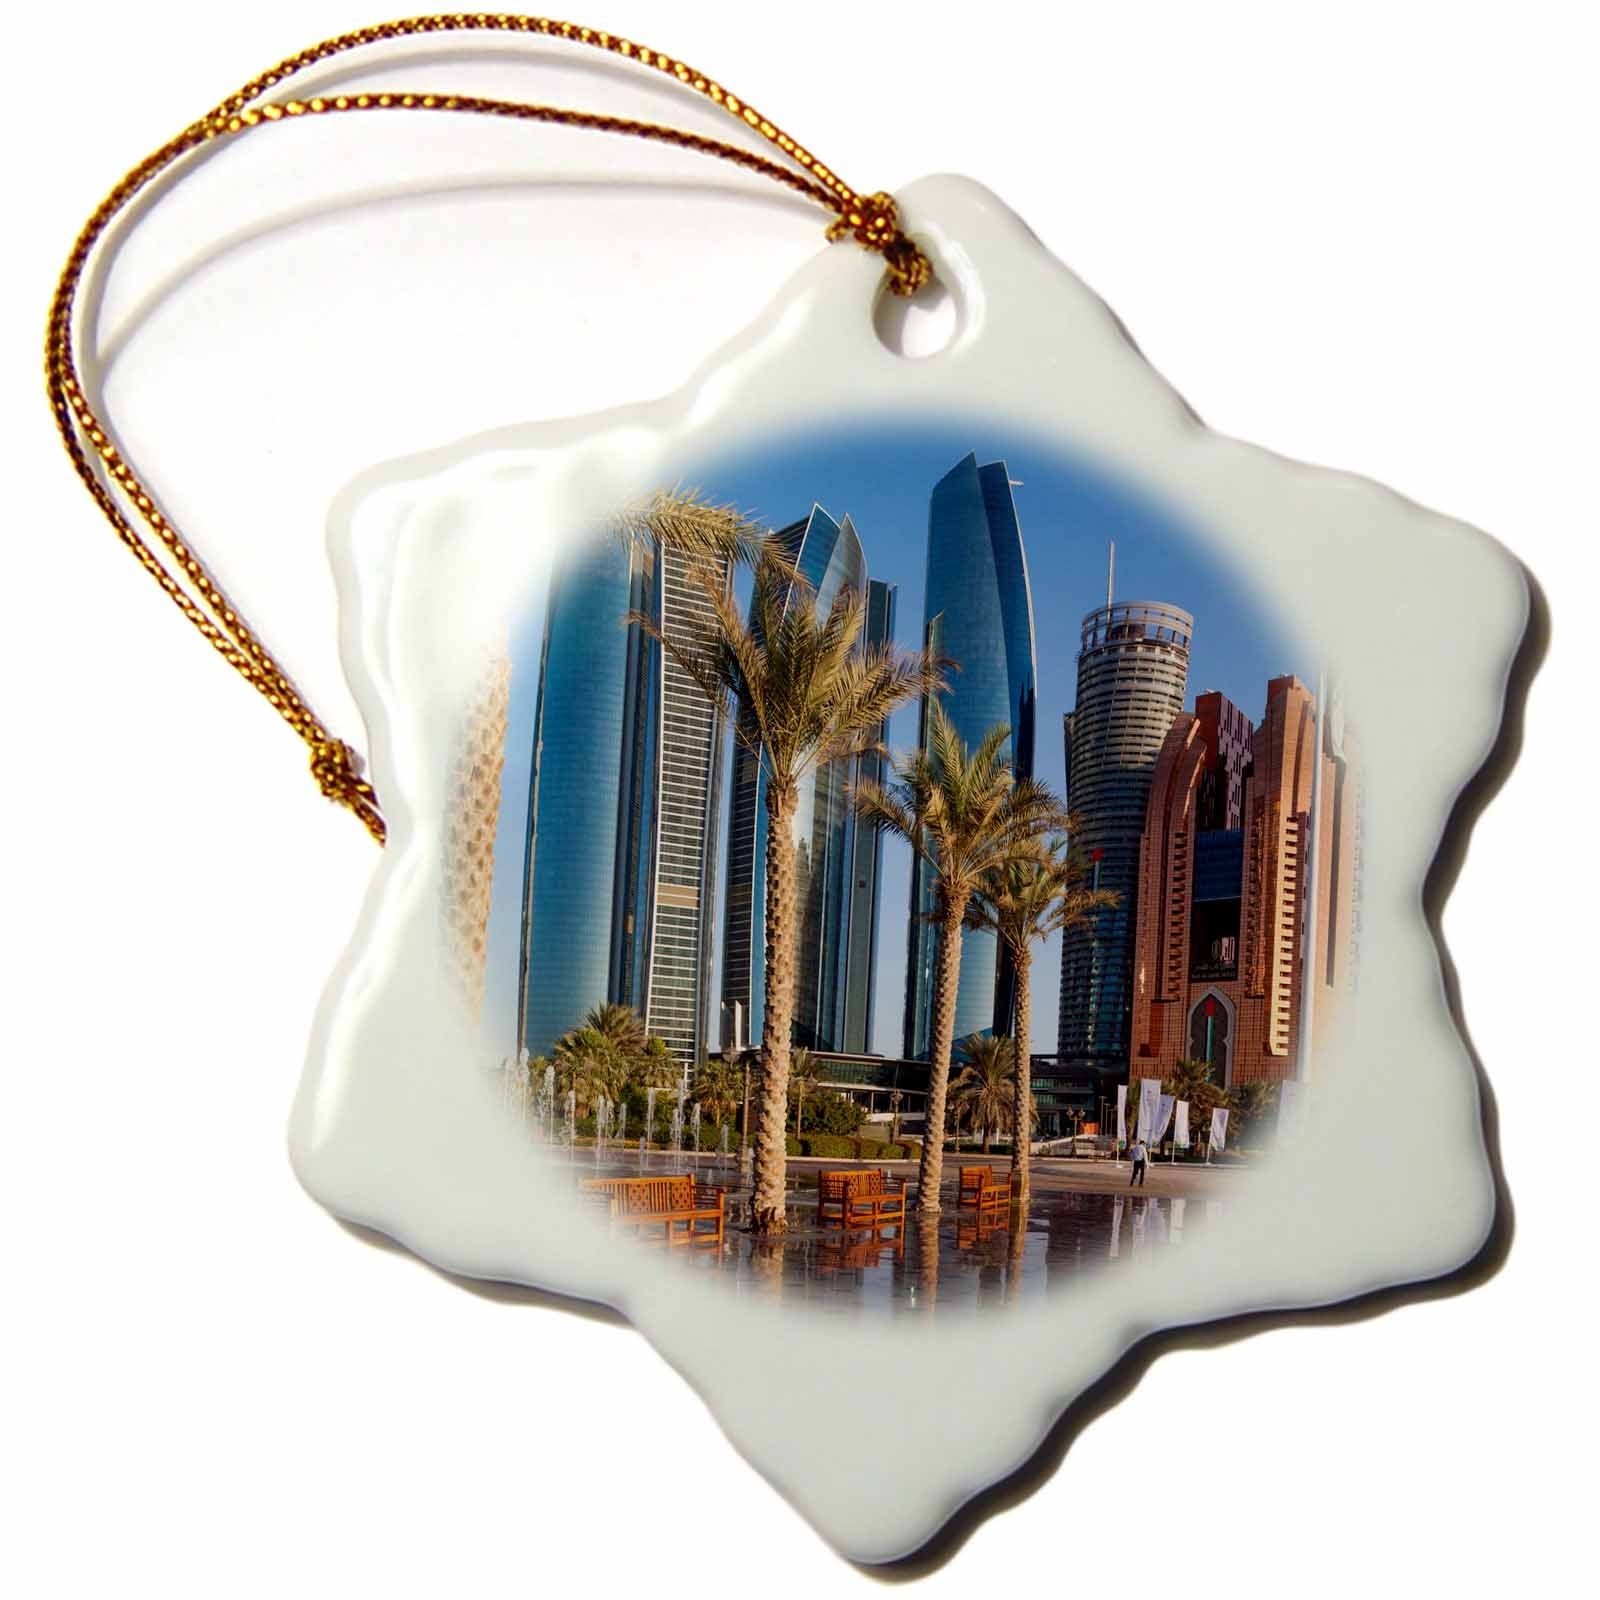 3dRose Danita Delimont - Cities - UAE, Abu Dhabi. Etihad Towers and Emirates Palace Hotel fountains - 3 inch Snowflake Porcelain Ornament (orn_277135_1)